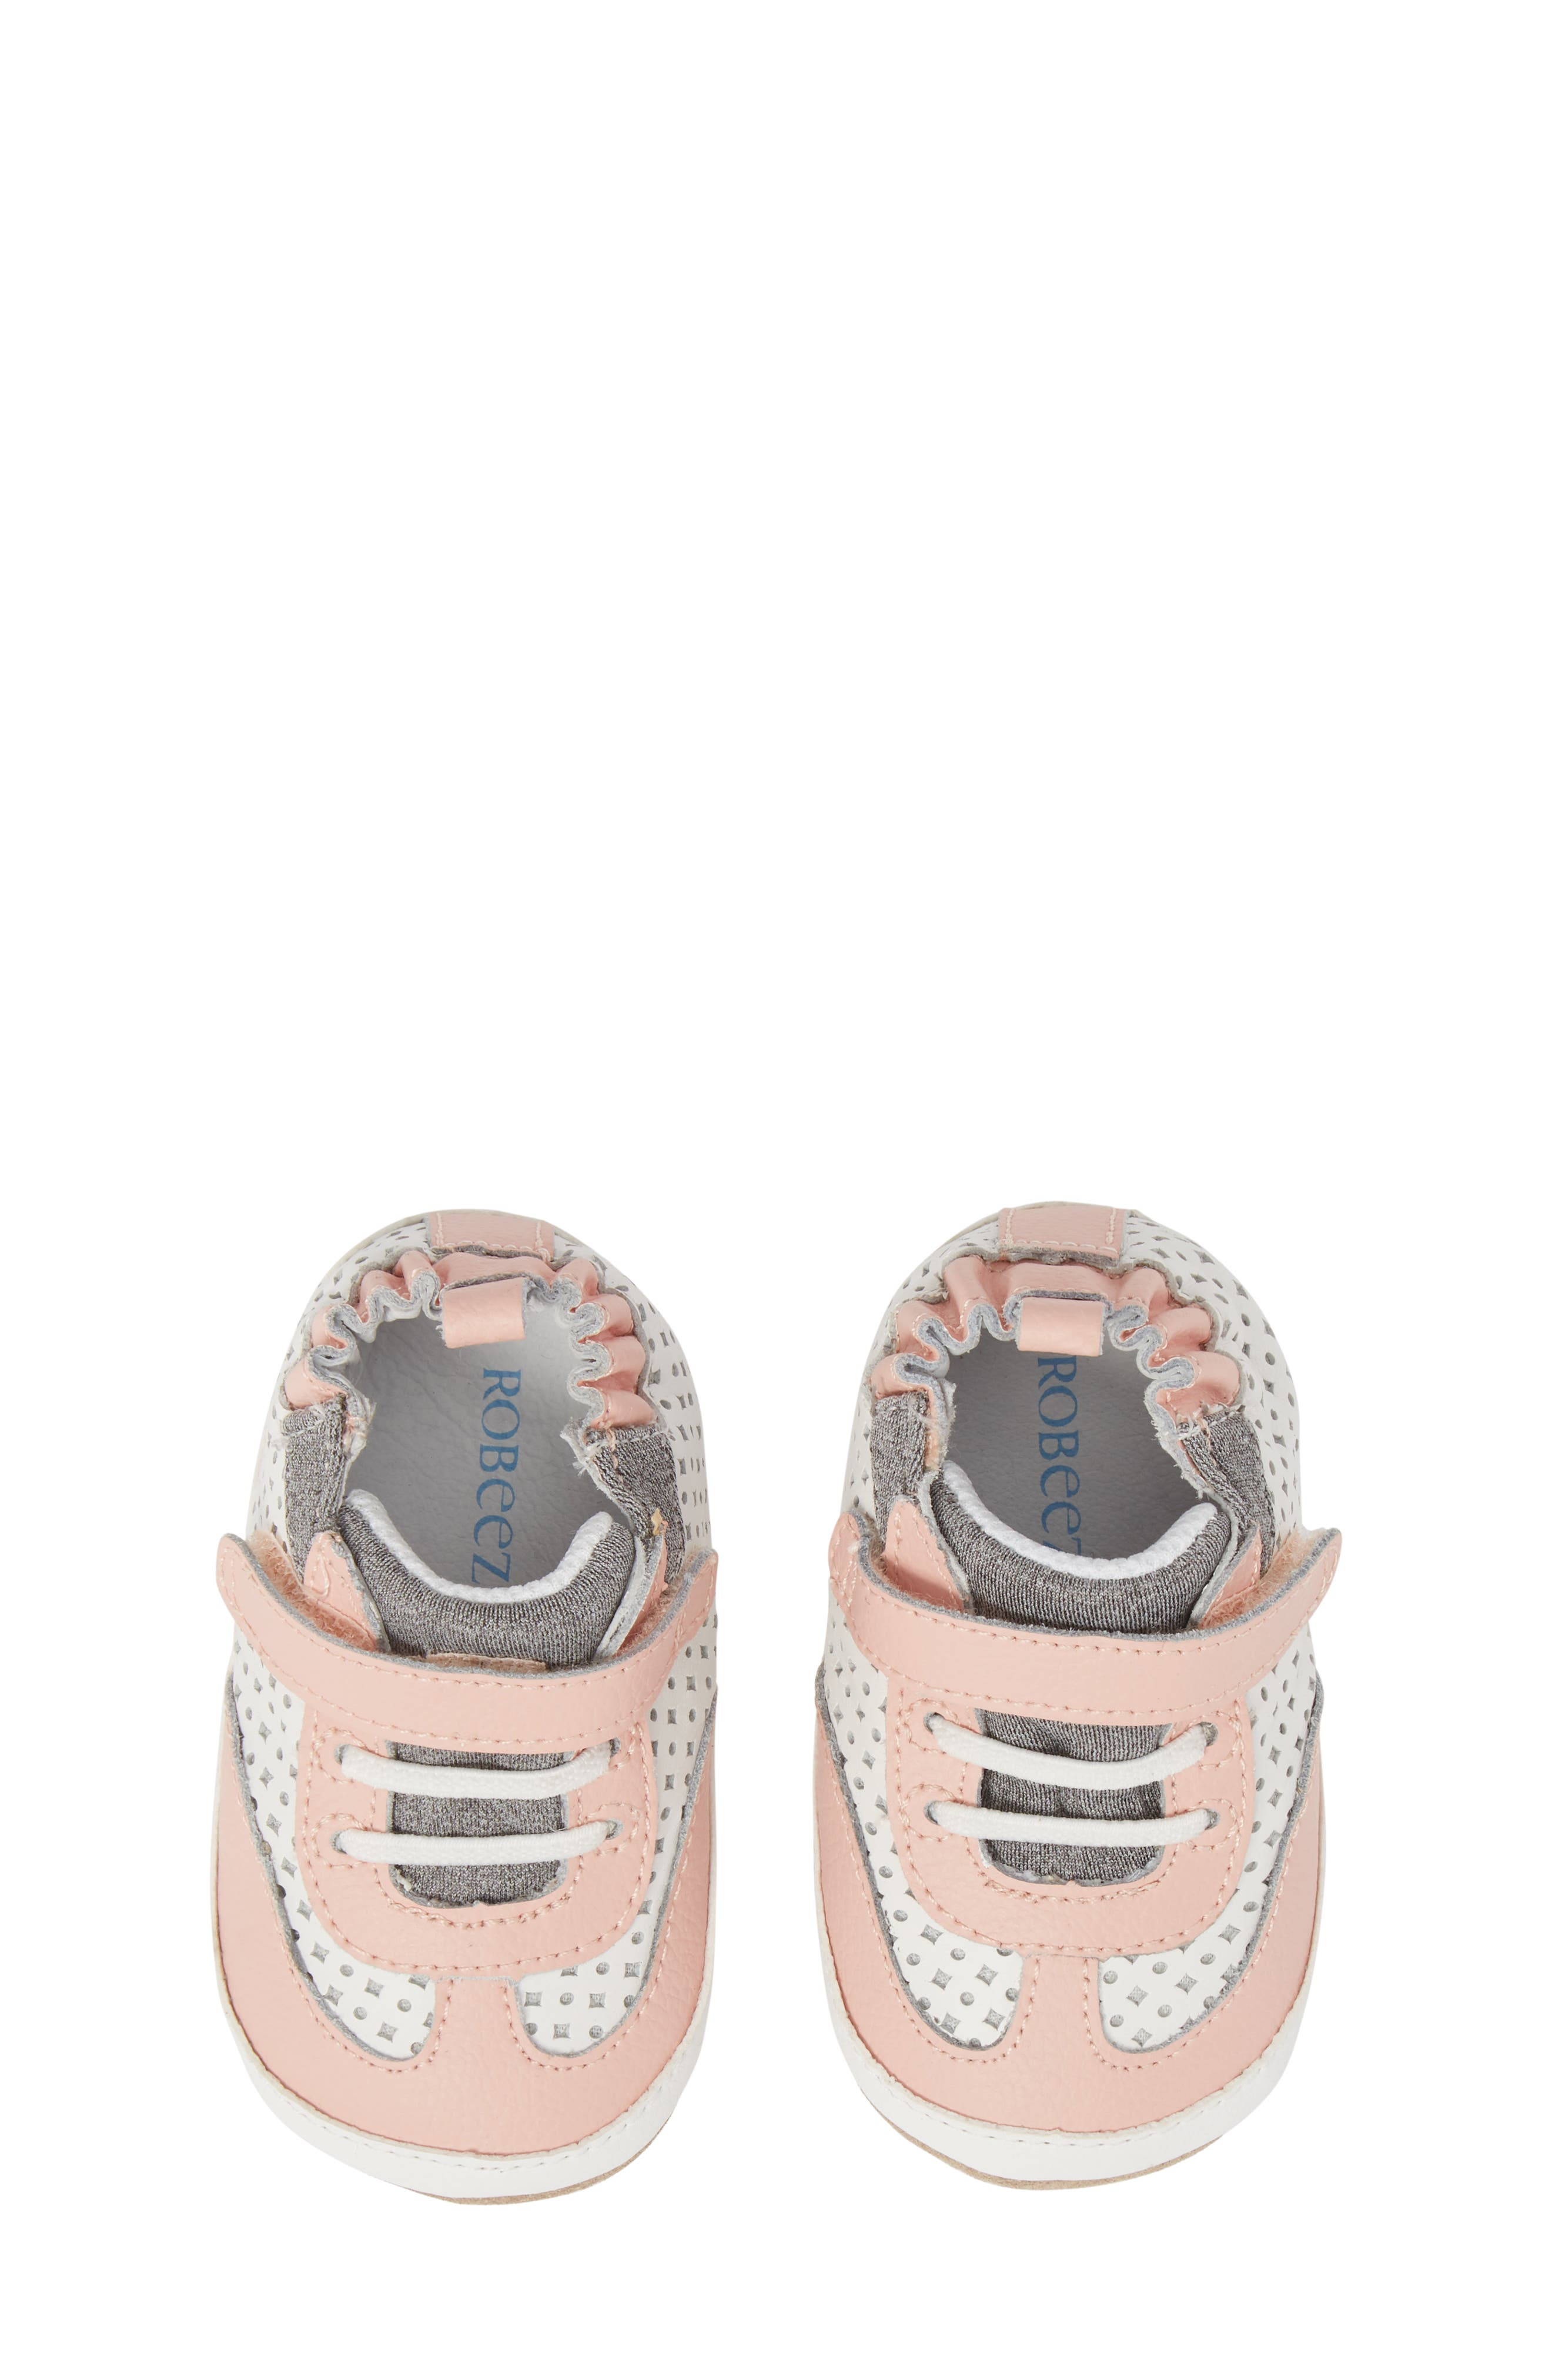 Mini Shoez Katie's Kicks Sneaker,                             Alternate thumbnail 5, color,                             PINK